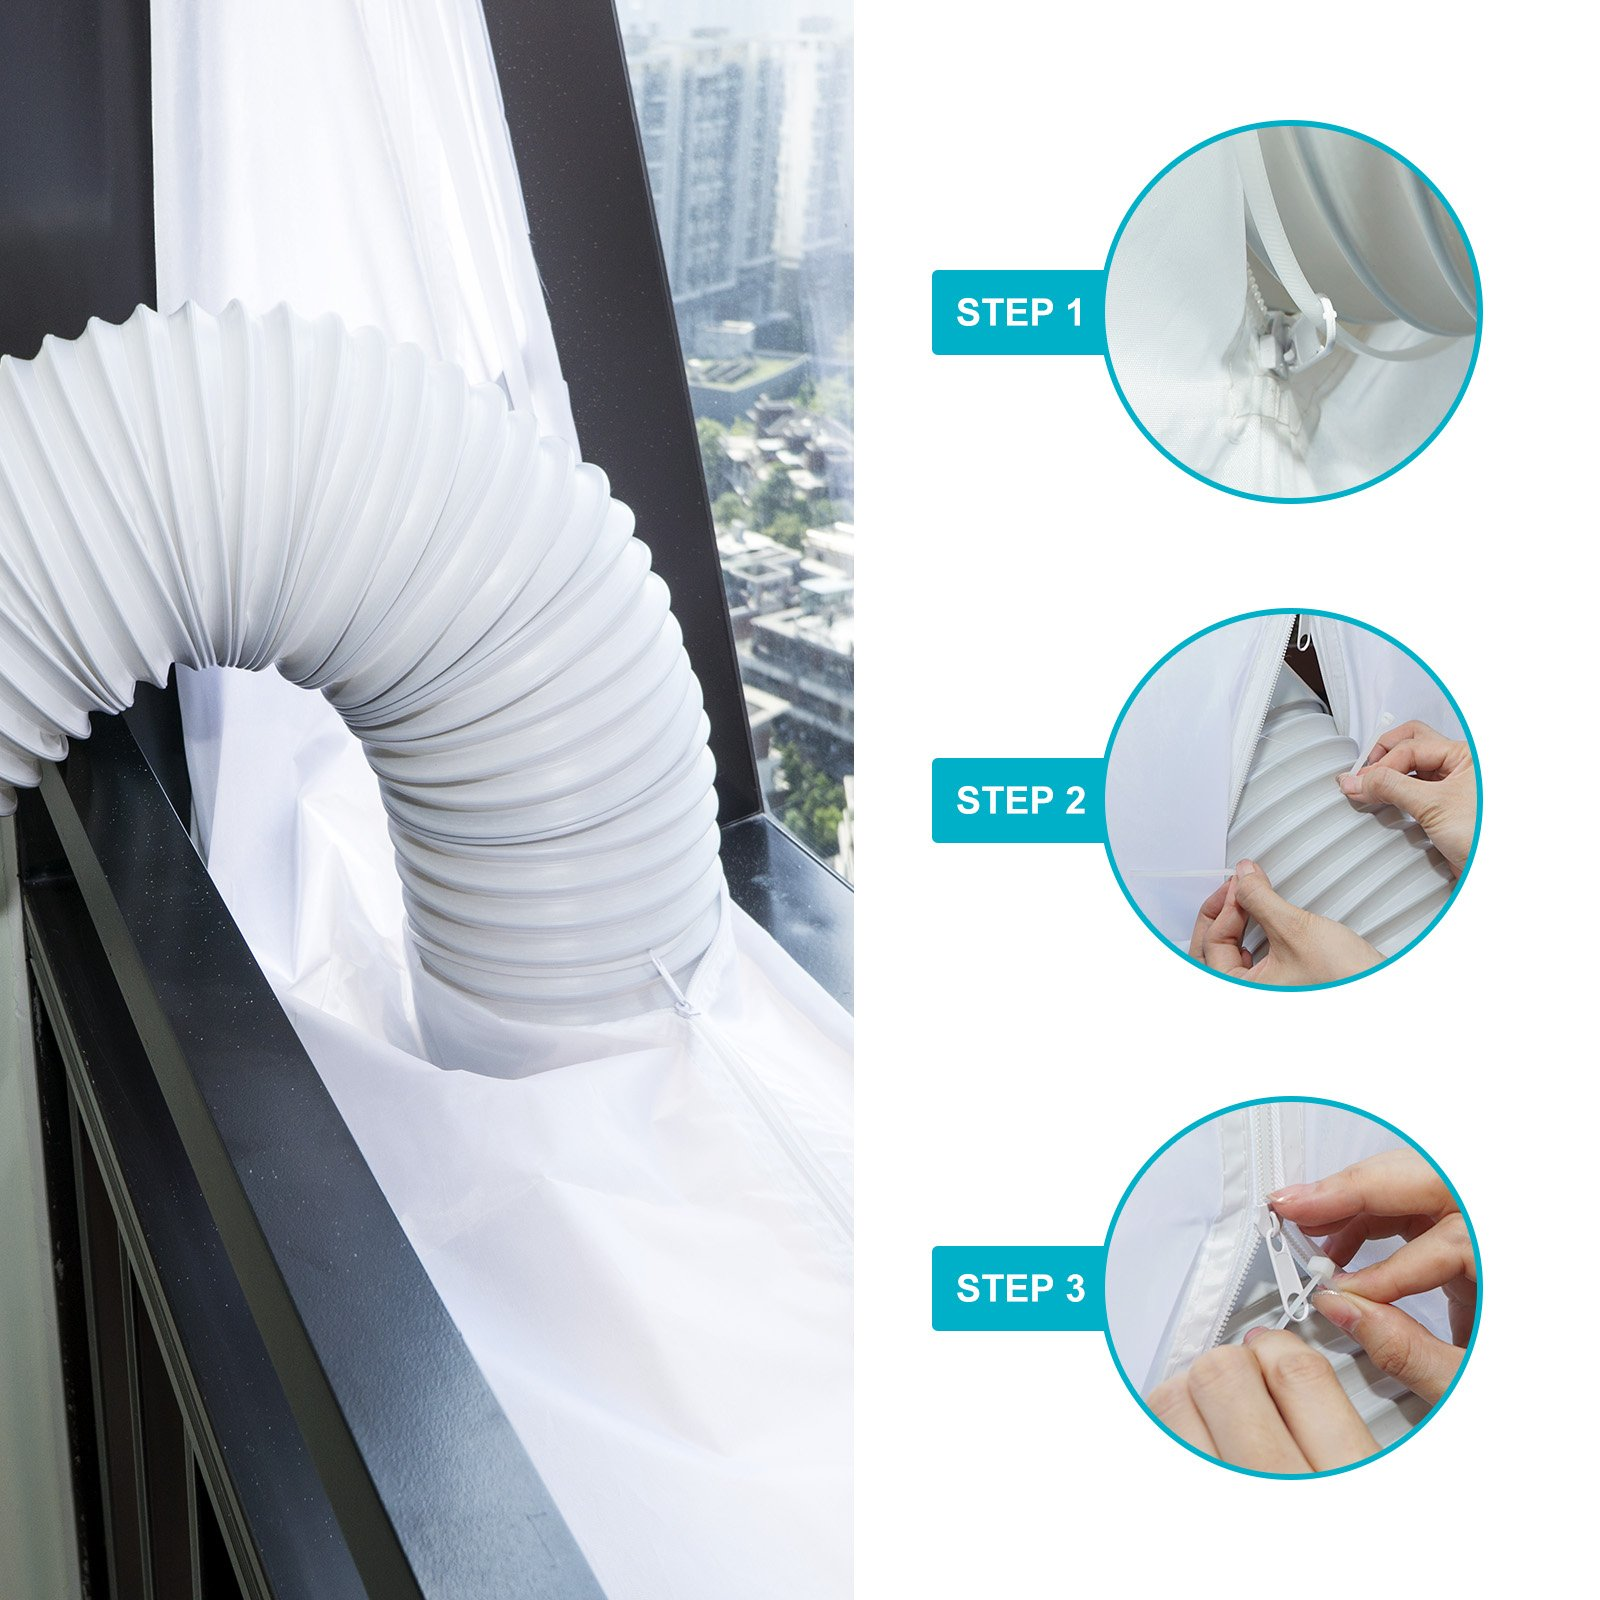 HOOMEE 300 cm Universal Window Seal for Portable Air Conditioner and Tumble Dryer – Works with Every Mobile Air-Conditioning Unit, Easy to Install - Air Exchange Guards with Zip and Adhesive Fastener by HOOMEE (Image #5)